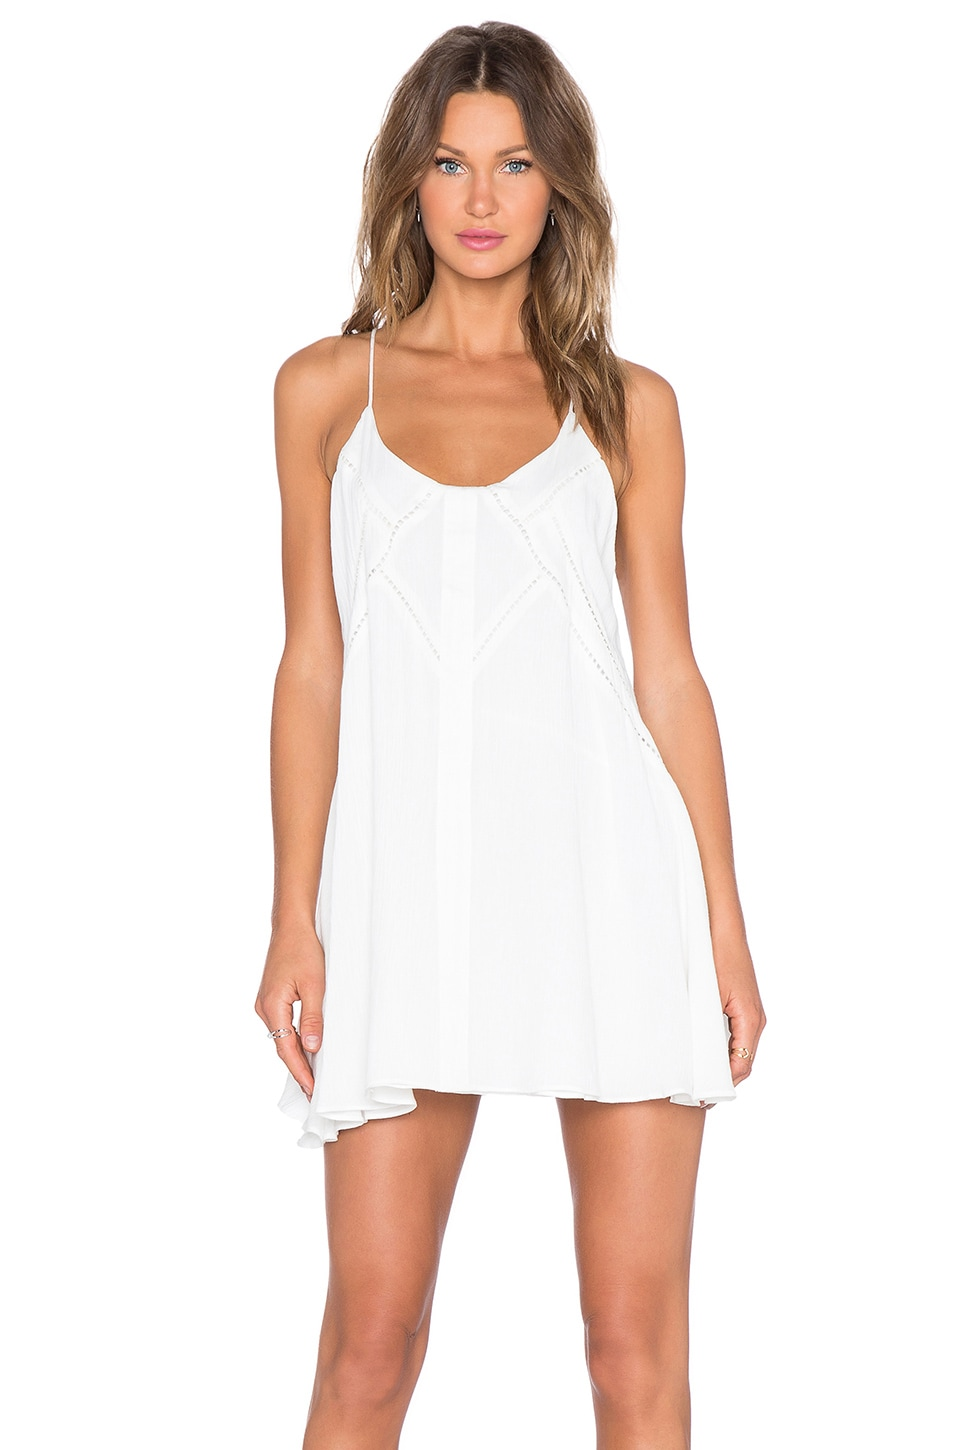 tiger Mist Follow Me Embroidered Dress in White